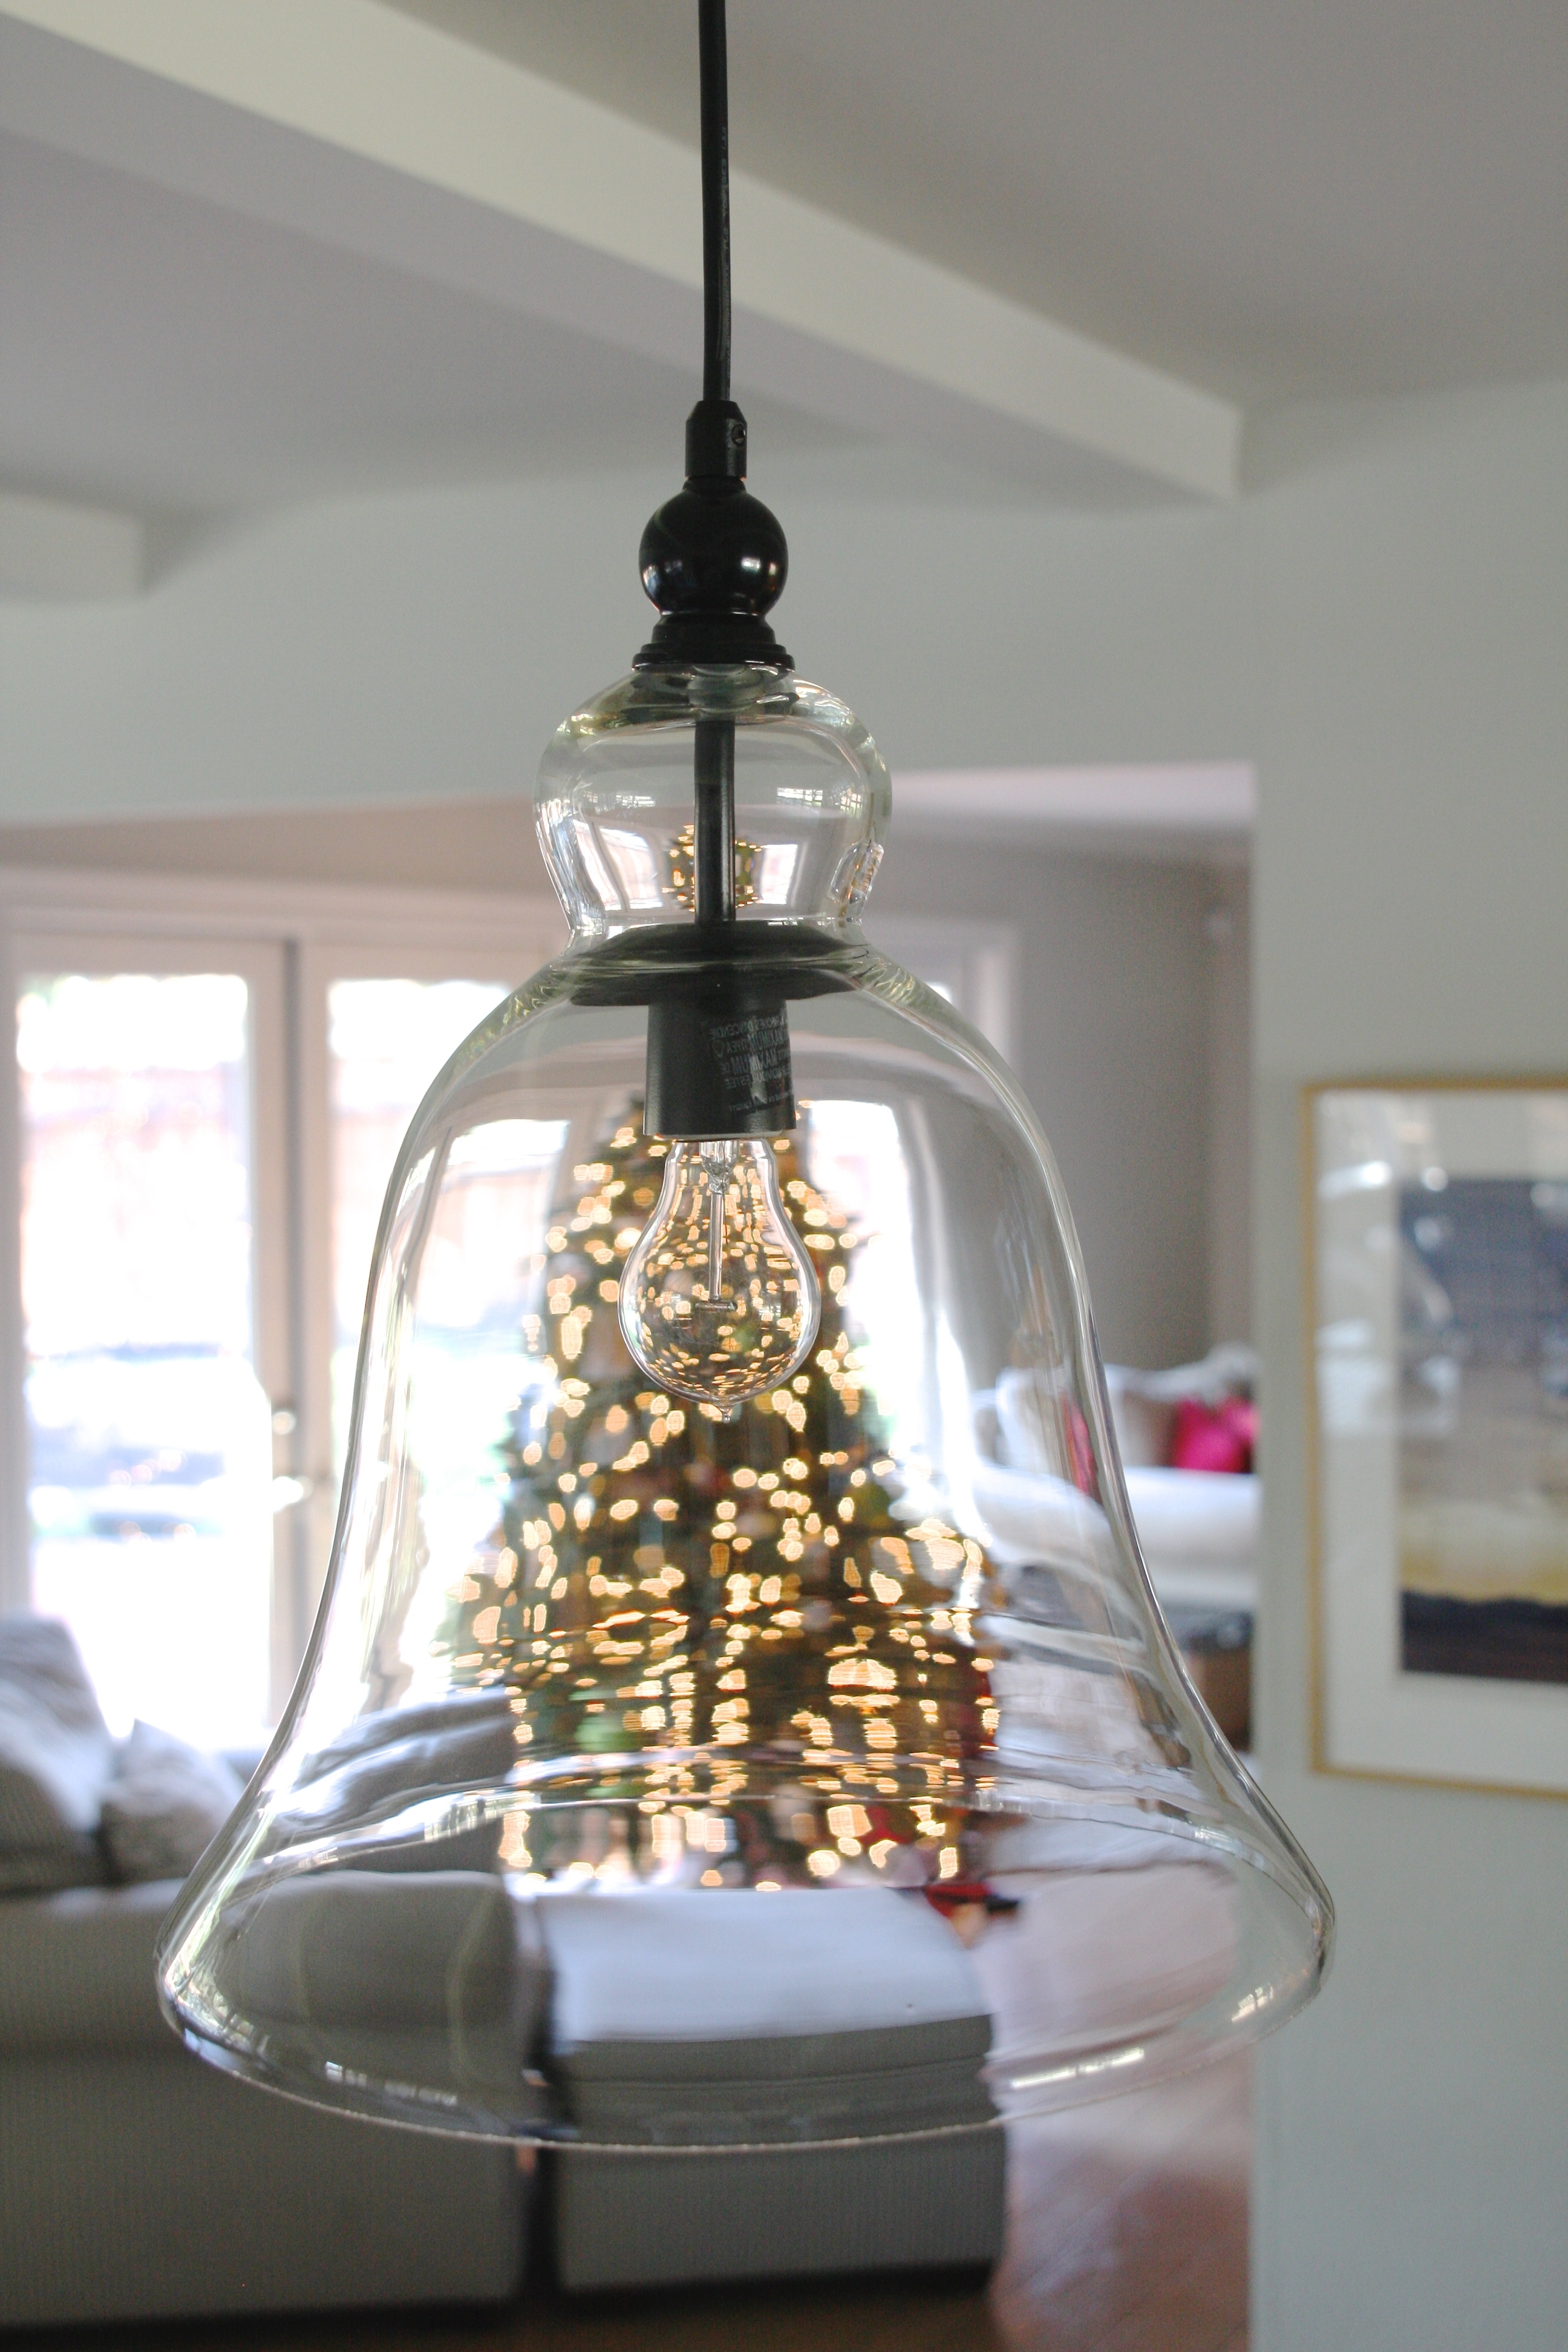 Outdoor Lanterns At Pottery Barn Intended For Most Up To Date How To Clean Pottery Barn Rustic Pendant Lights – Simply Organized (View 8 of 20)